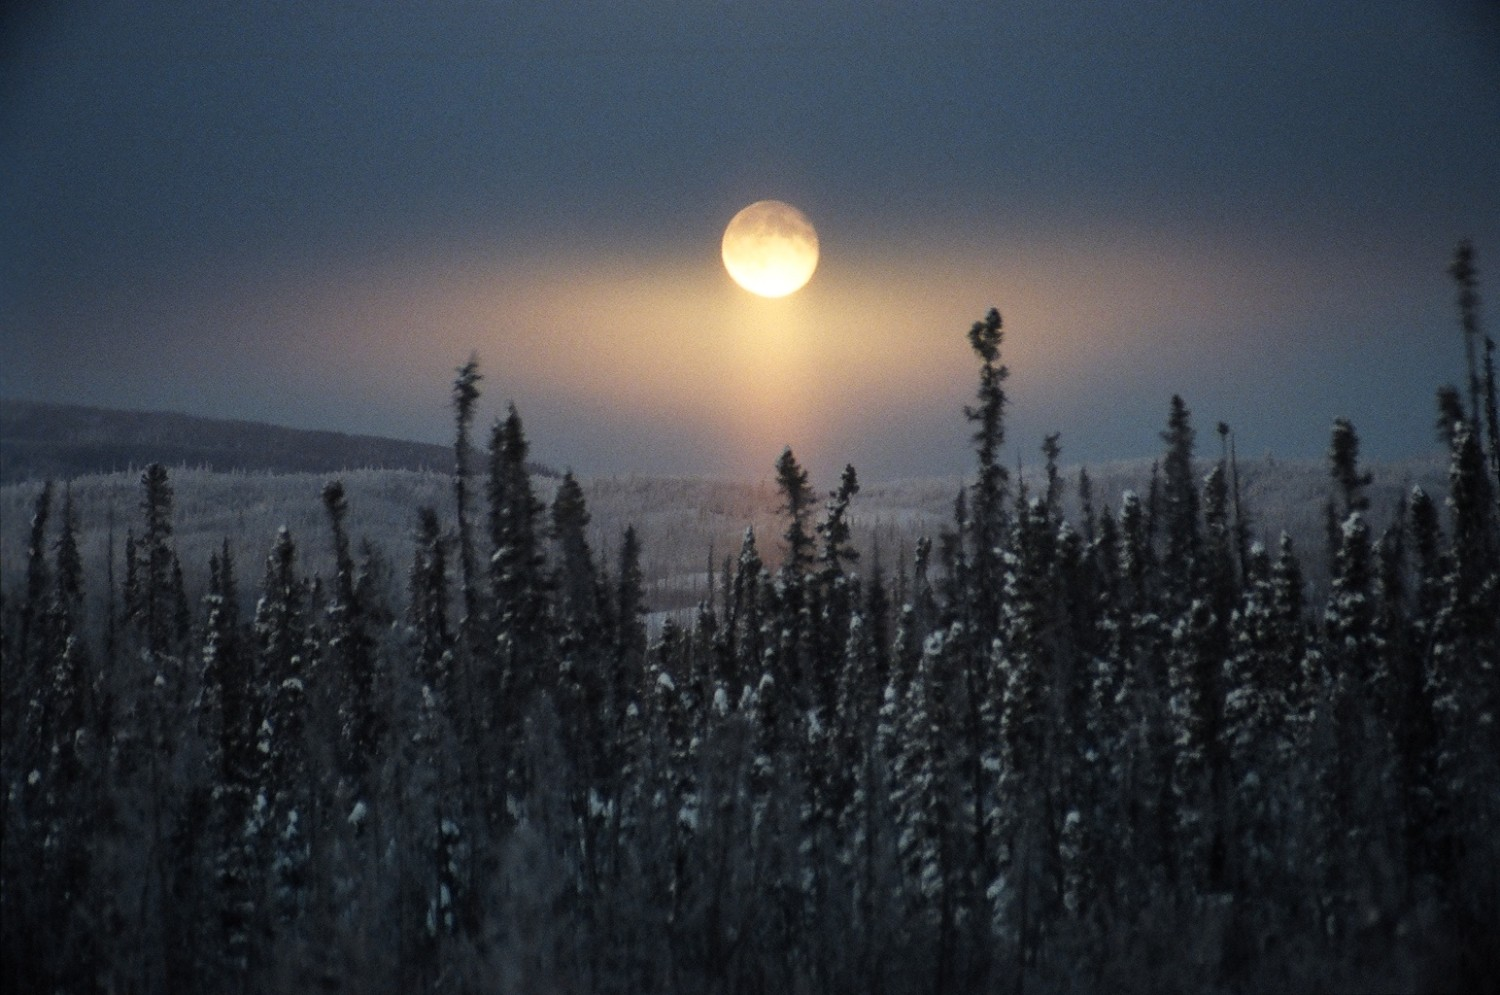 November: The Beaver Moon At this time of year the beavers are busy preparing for winter, and it's time to set beaver traps and secure a store of warm fur before the swamps freeze over. Some tribes called this the Frosty Moon.